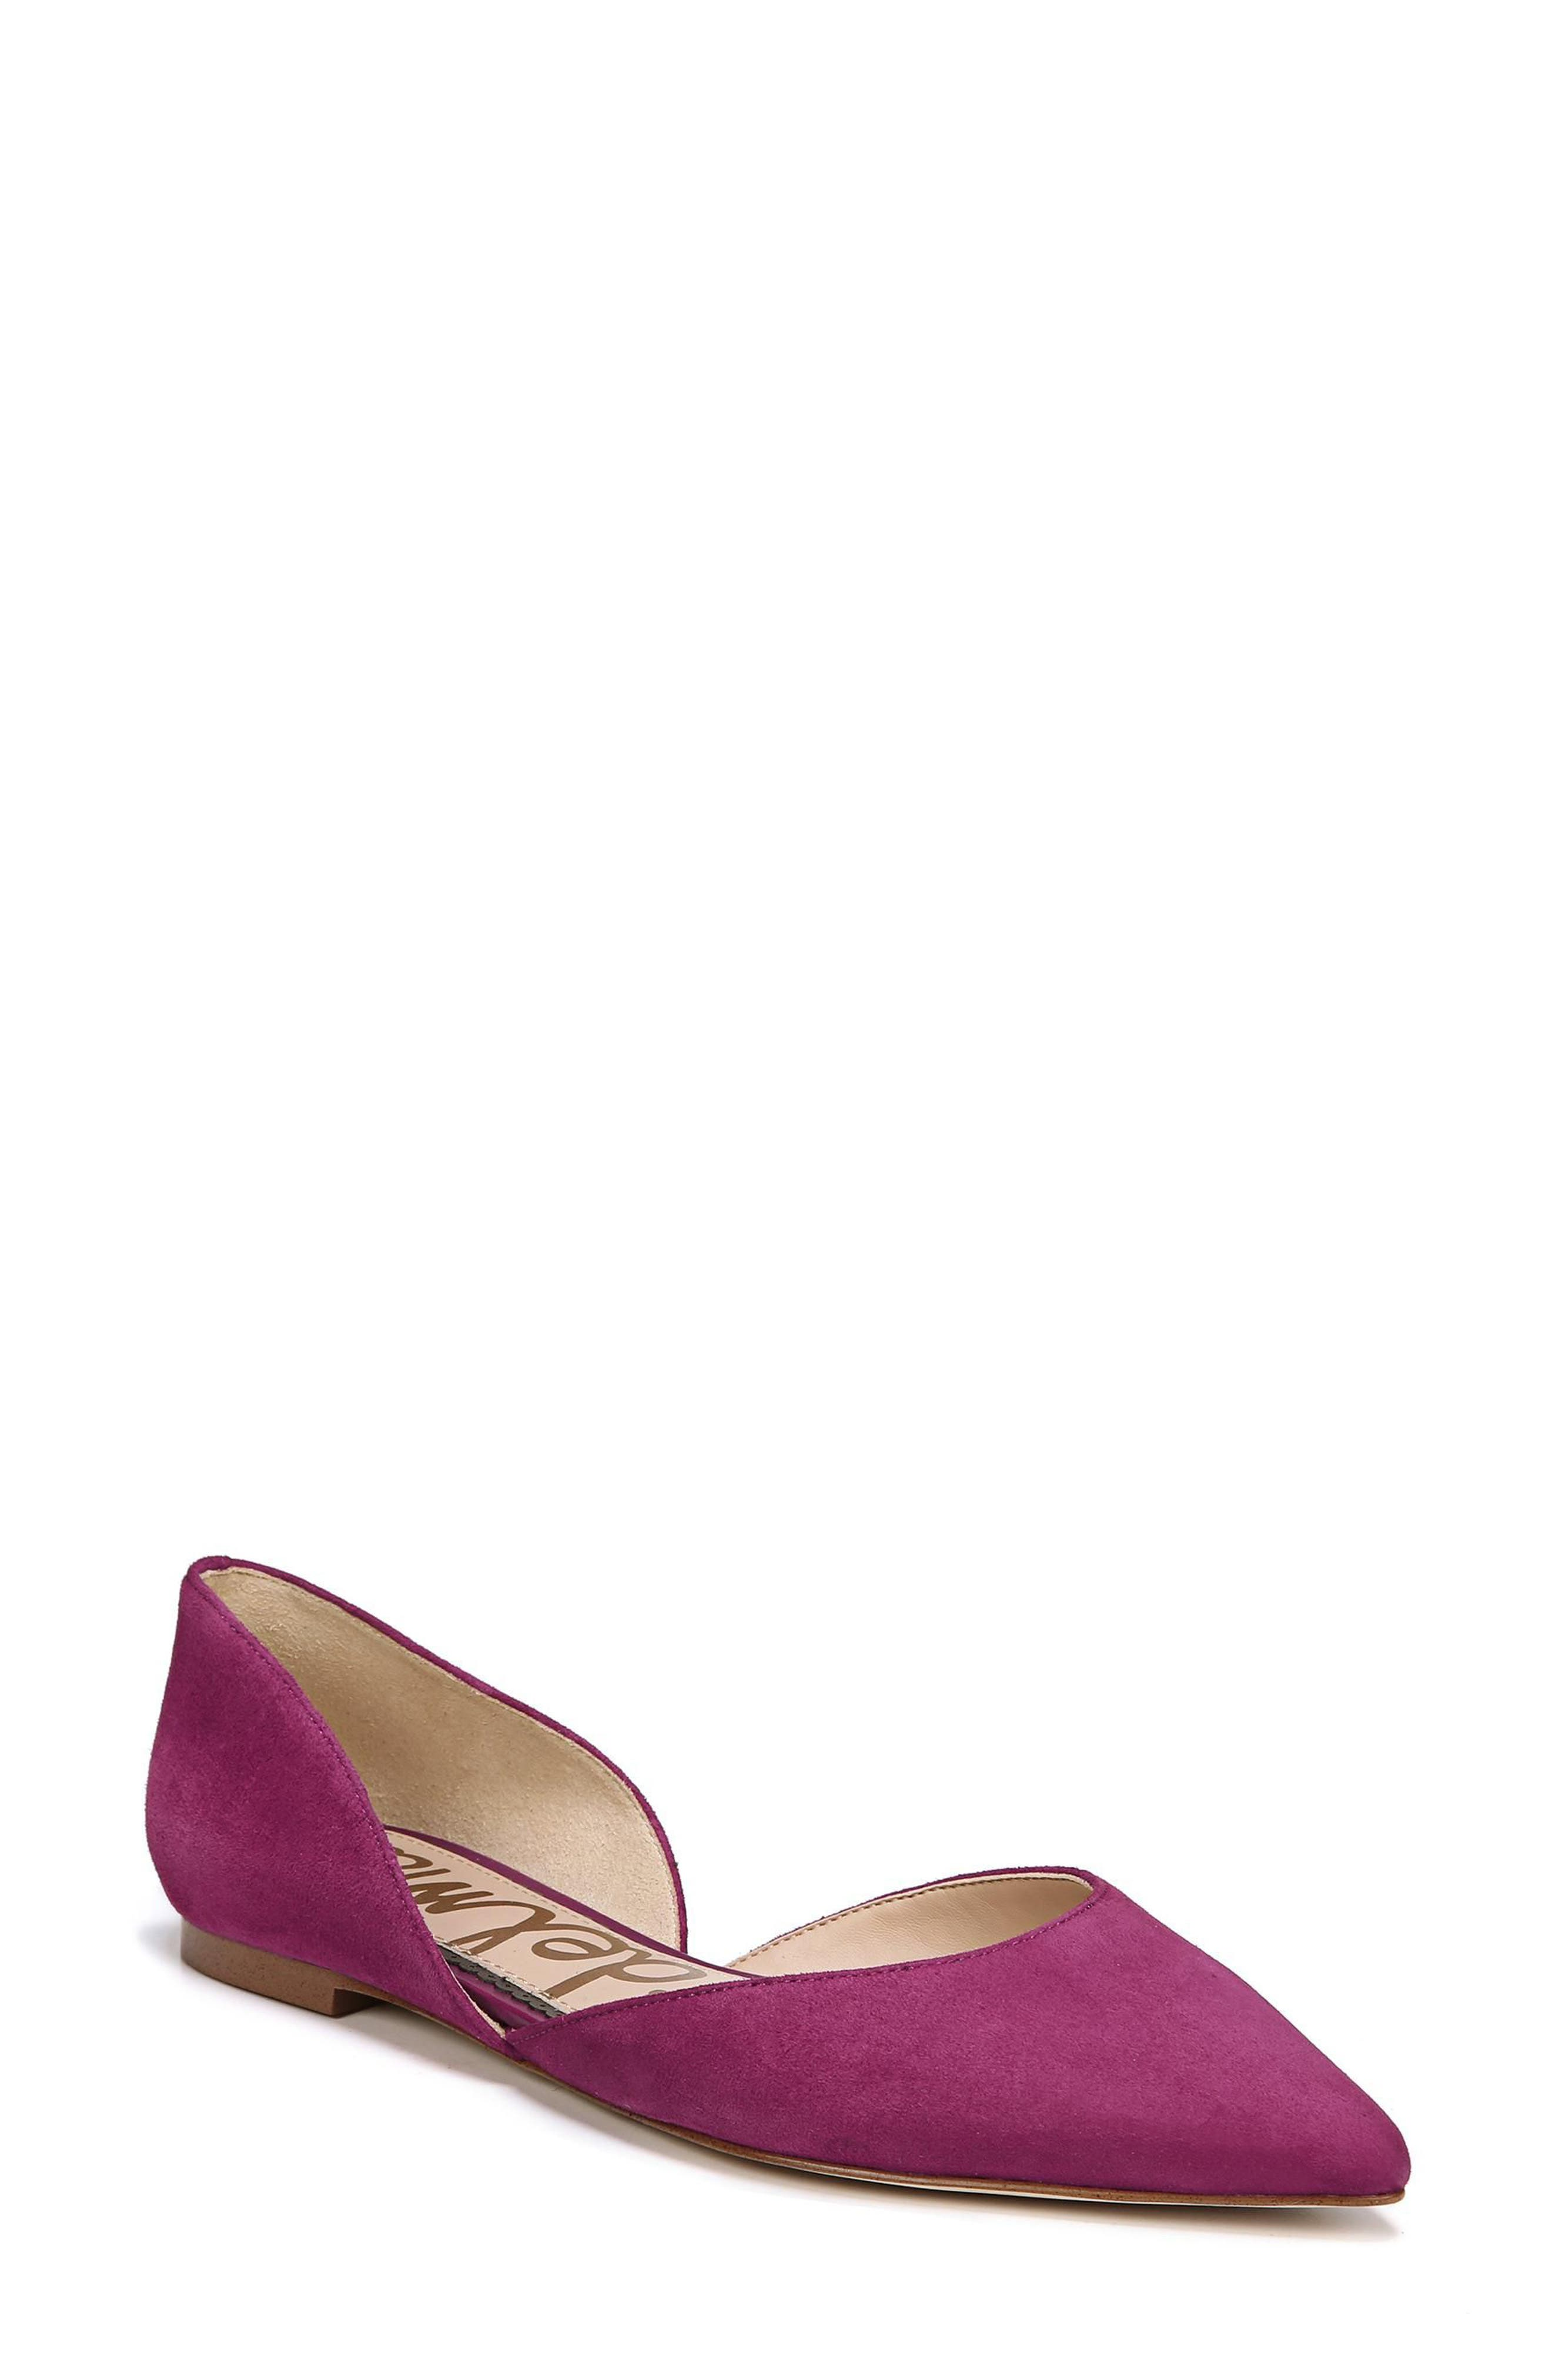 Rodney Pointy Toe d'Orsay Flat,                             Main thumbnail 1, color,                             PURPLE PLUM SUEDE